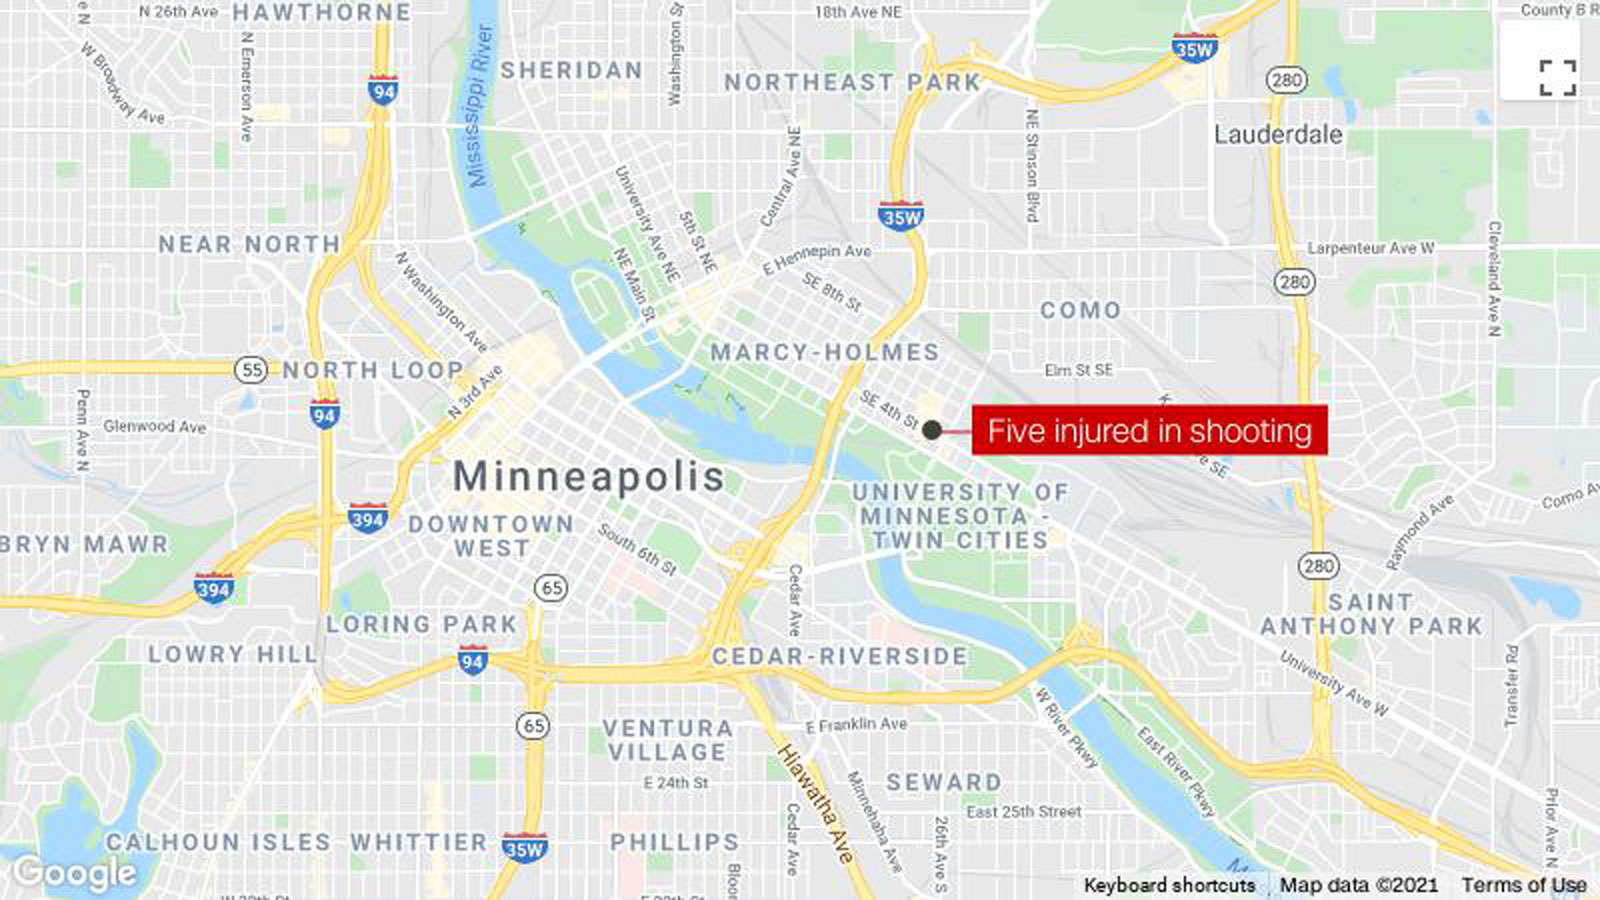 Minneapolis shooting leaves 5 people wounded